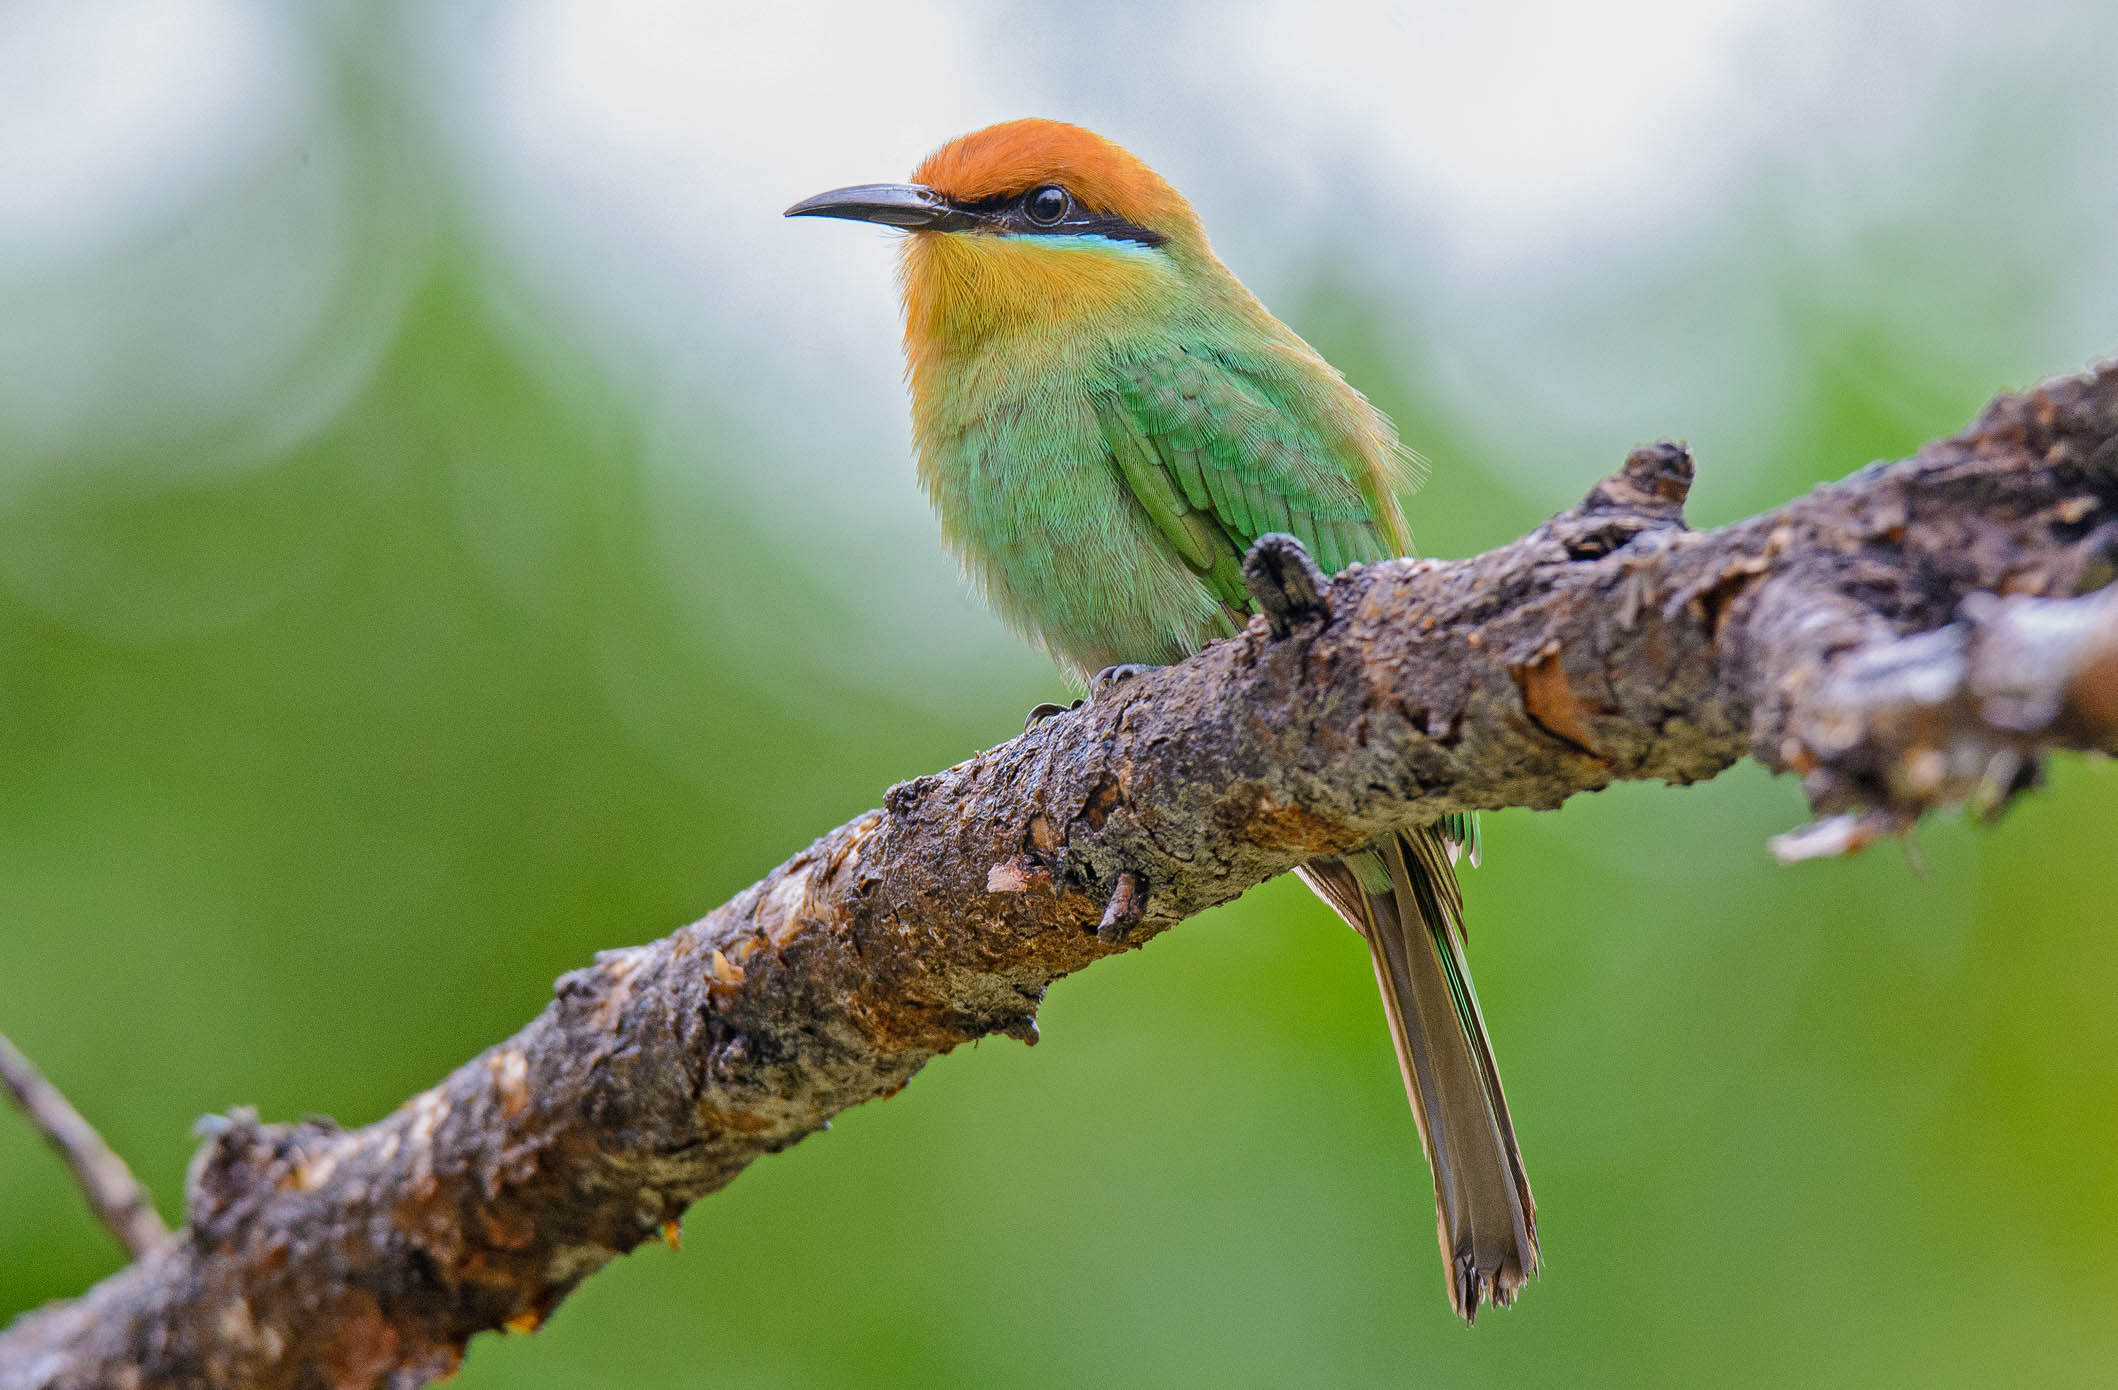 Birding Tour Malawi: 15-day Birding Adventure December 2018